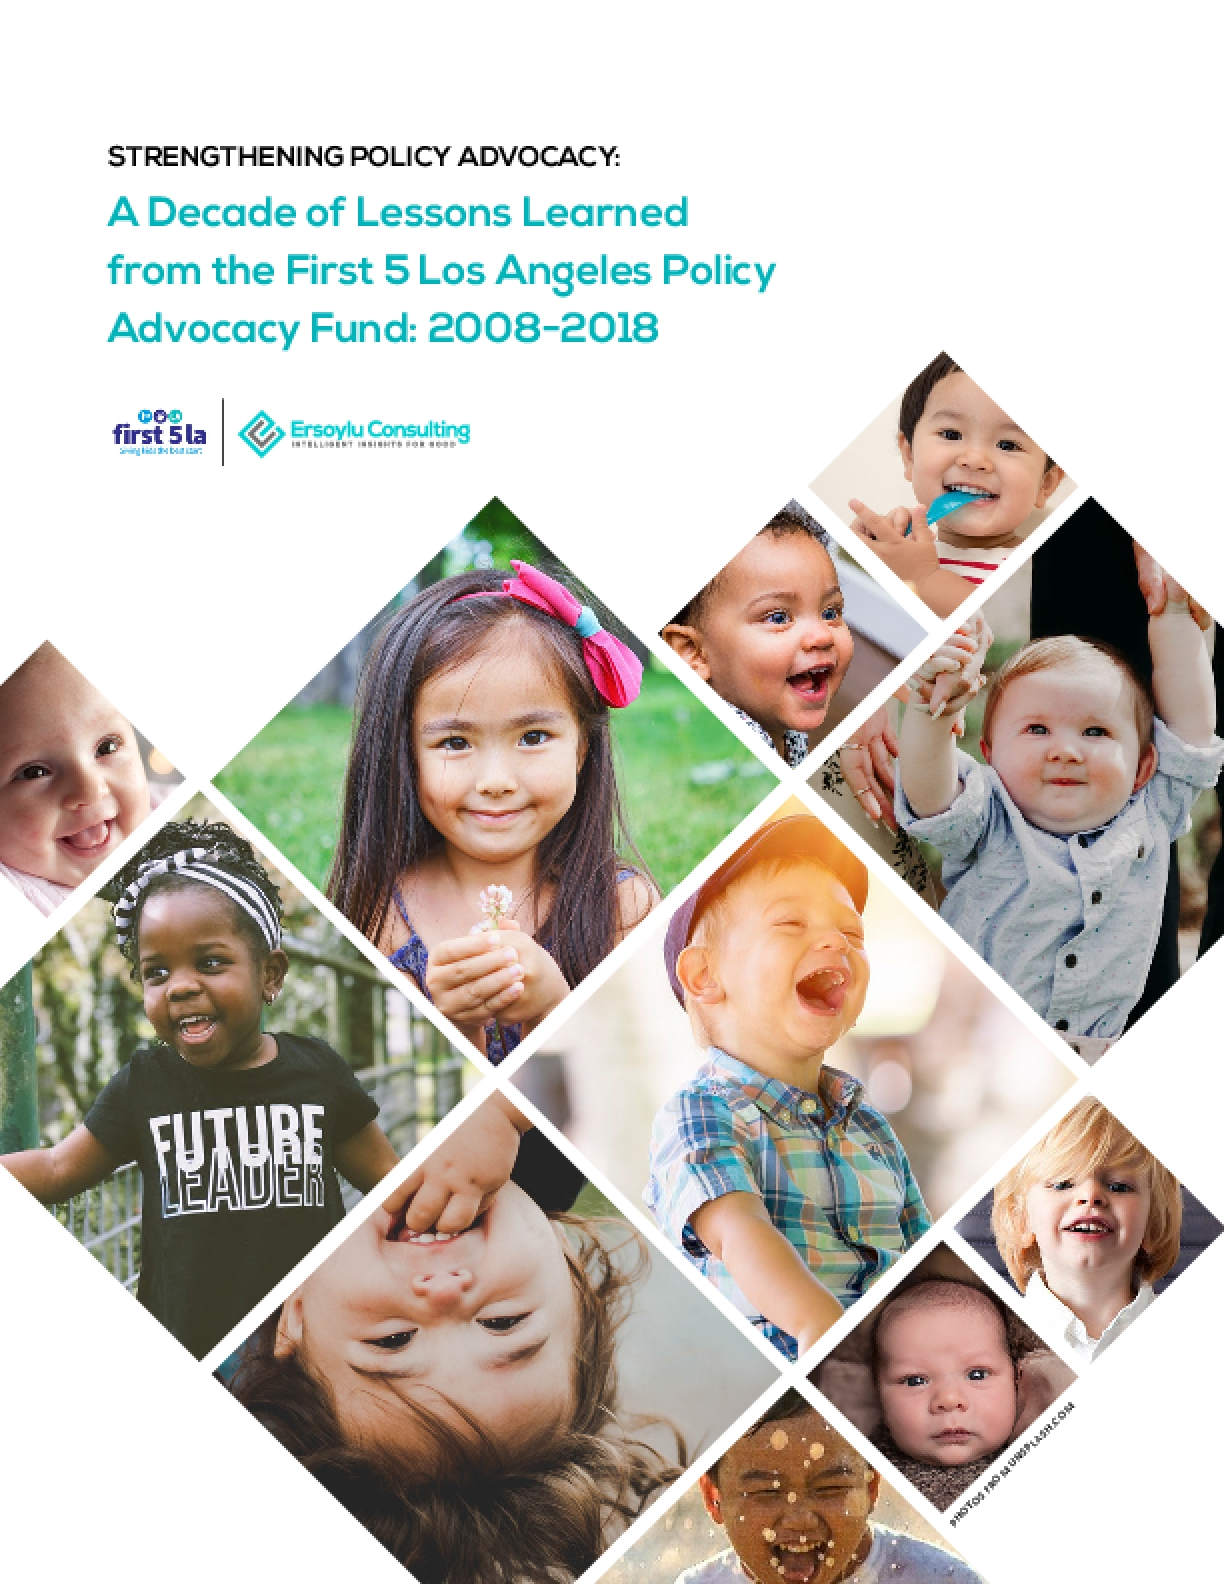 Strengthening Policy Advocacy: A Decade of Lessons Learned from the First 5 Los Angeles Policy Advocacy Fund: 2008-20118